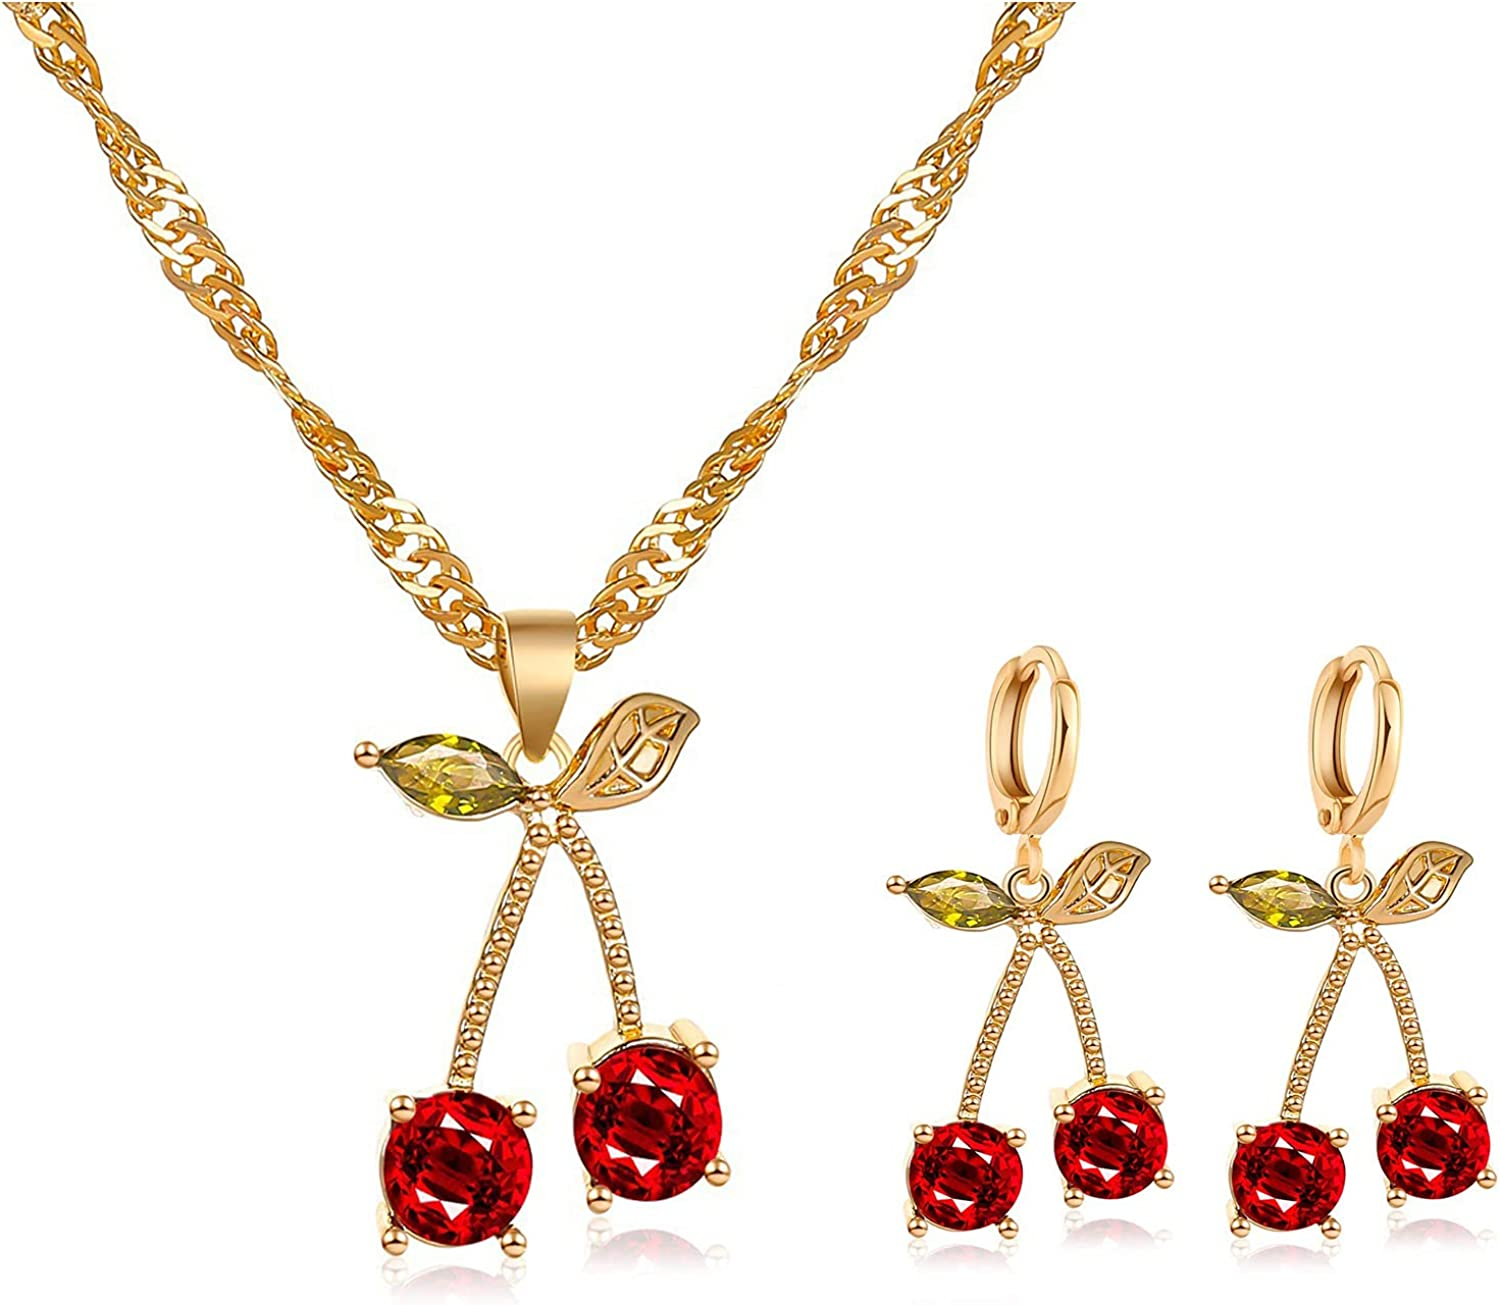 Pingyongchang Unique Chic Charm Sparkly Red Crystals Cherry Statement Earrings Necklace Sets Green Leaf Red Rhinestones Fruit Cherry Dangle Earrings for Women Girls Jewelry Gifts